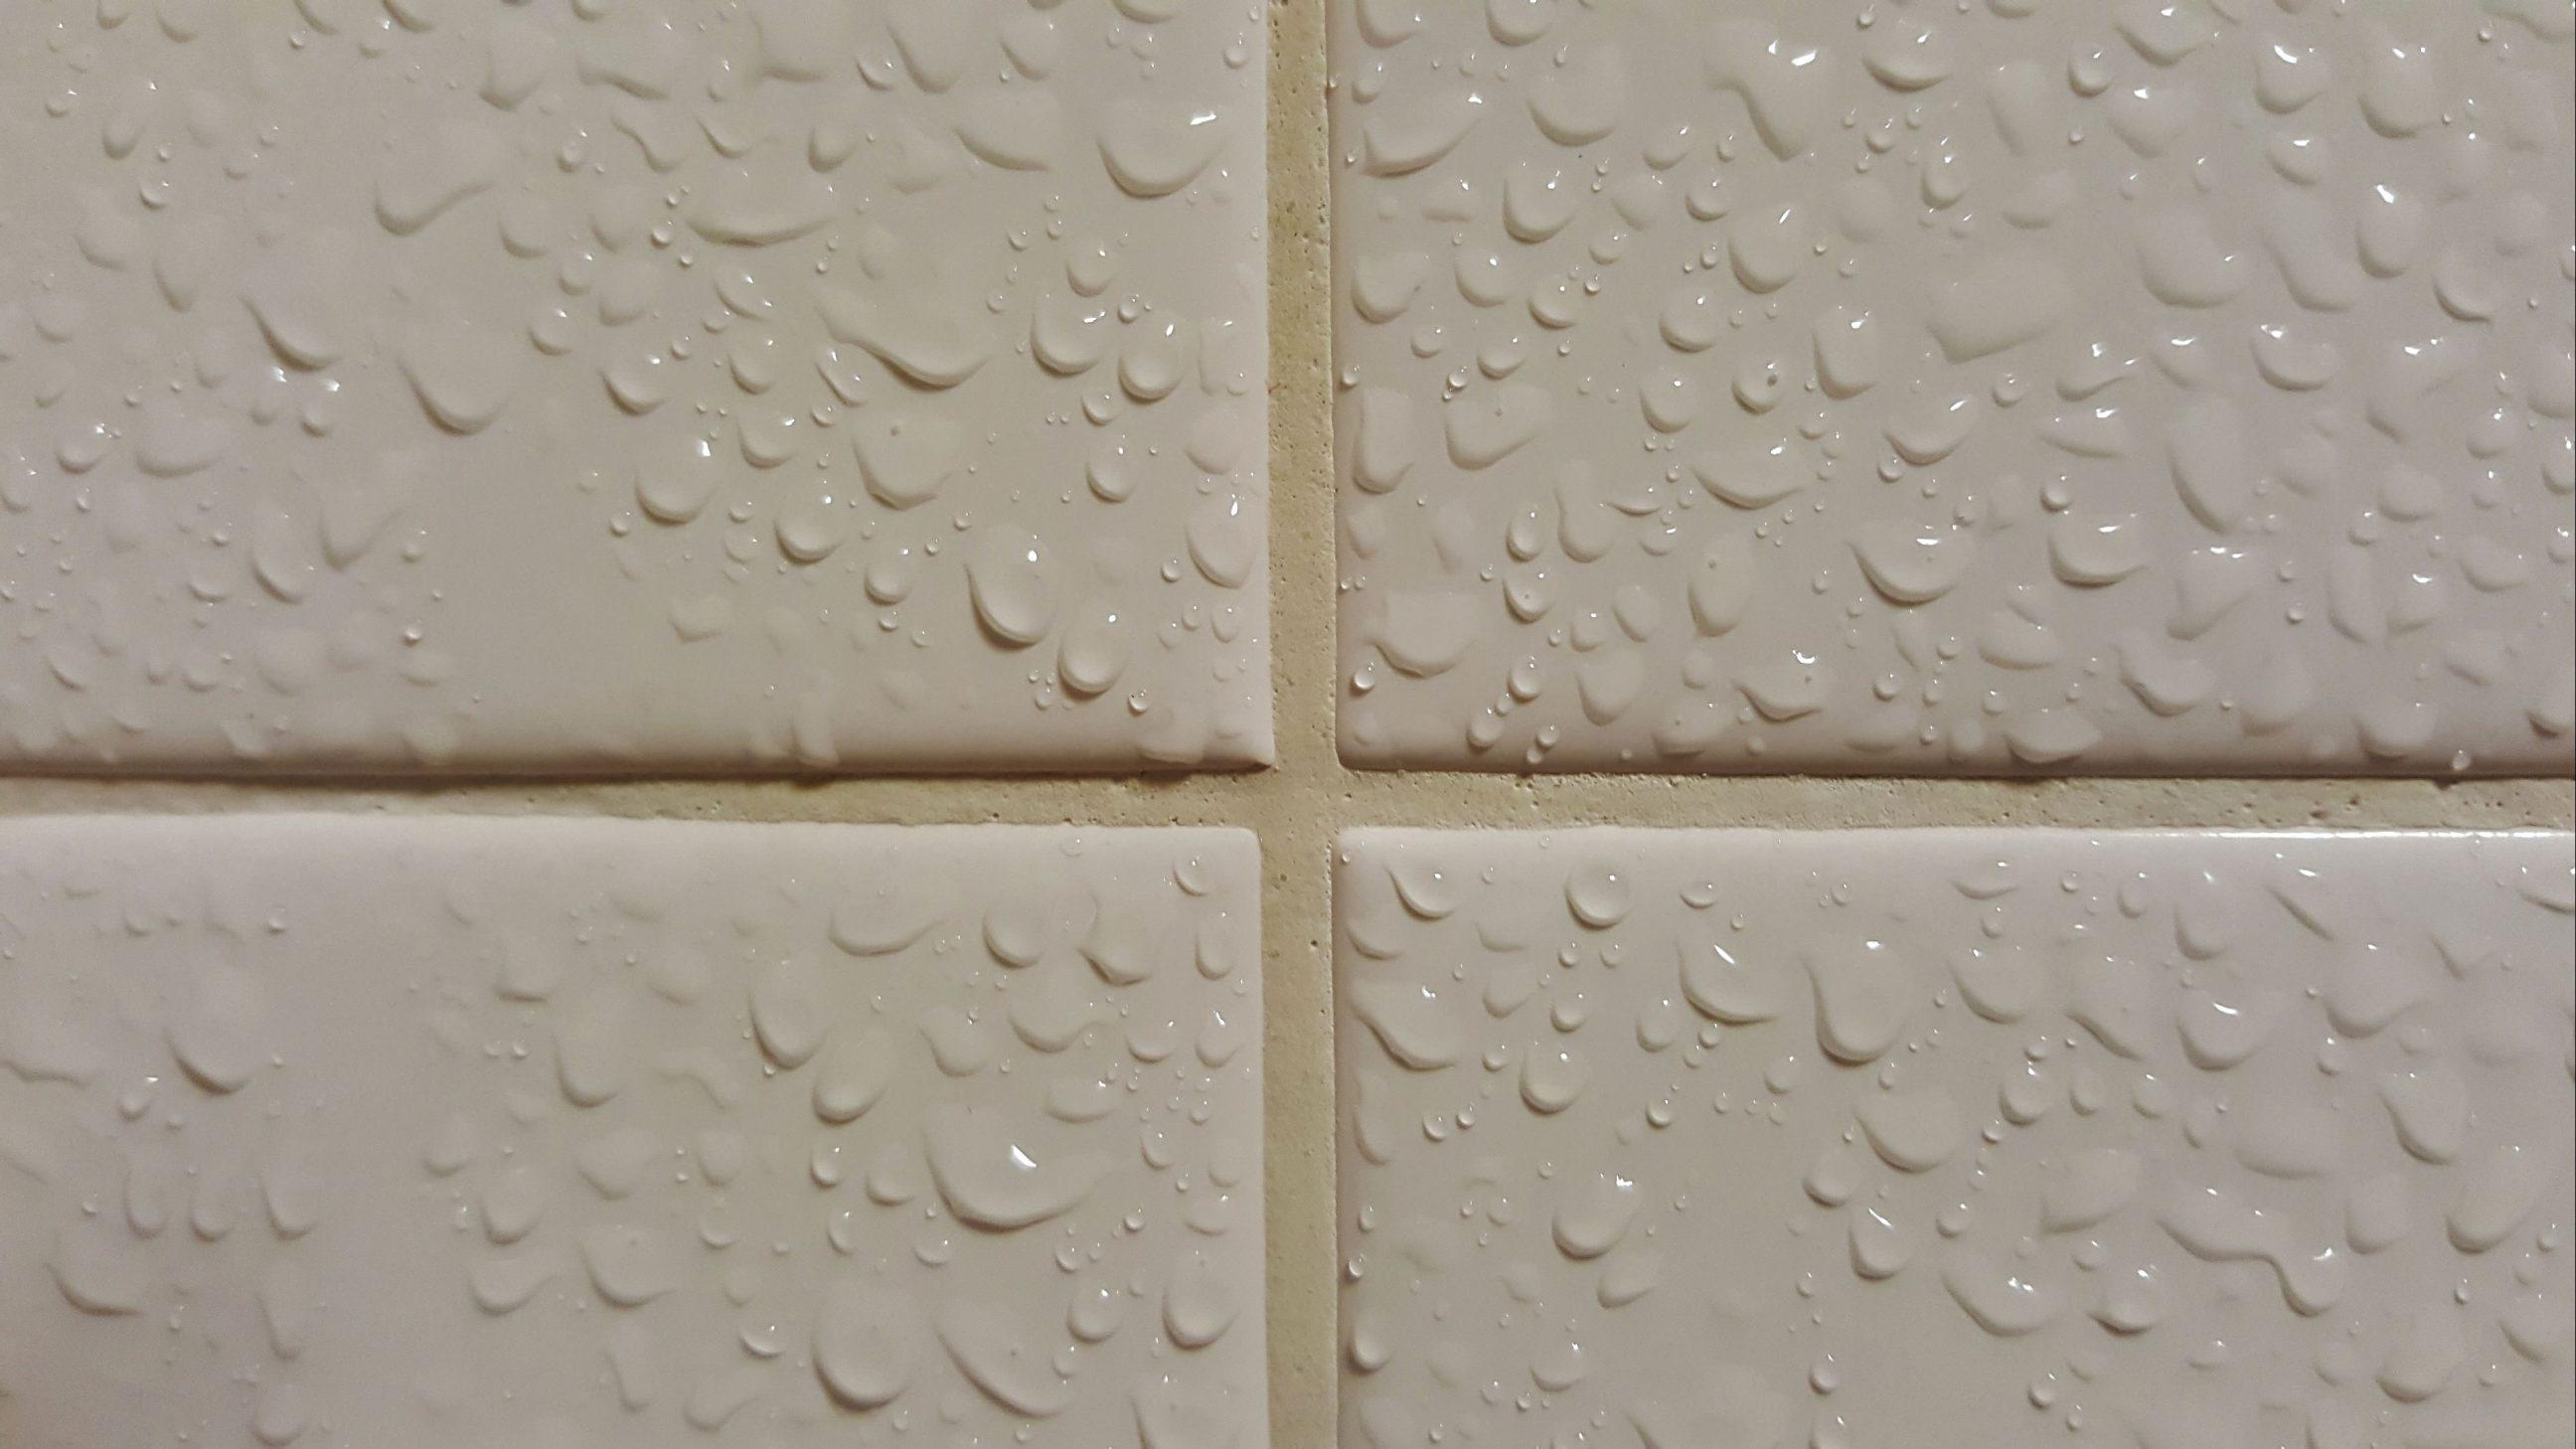 Grout on Bathroom Tiles